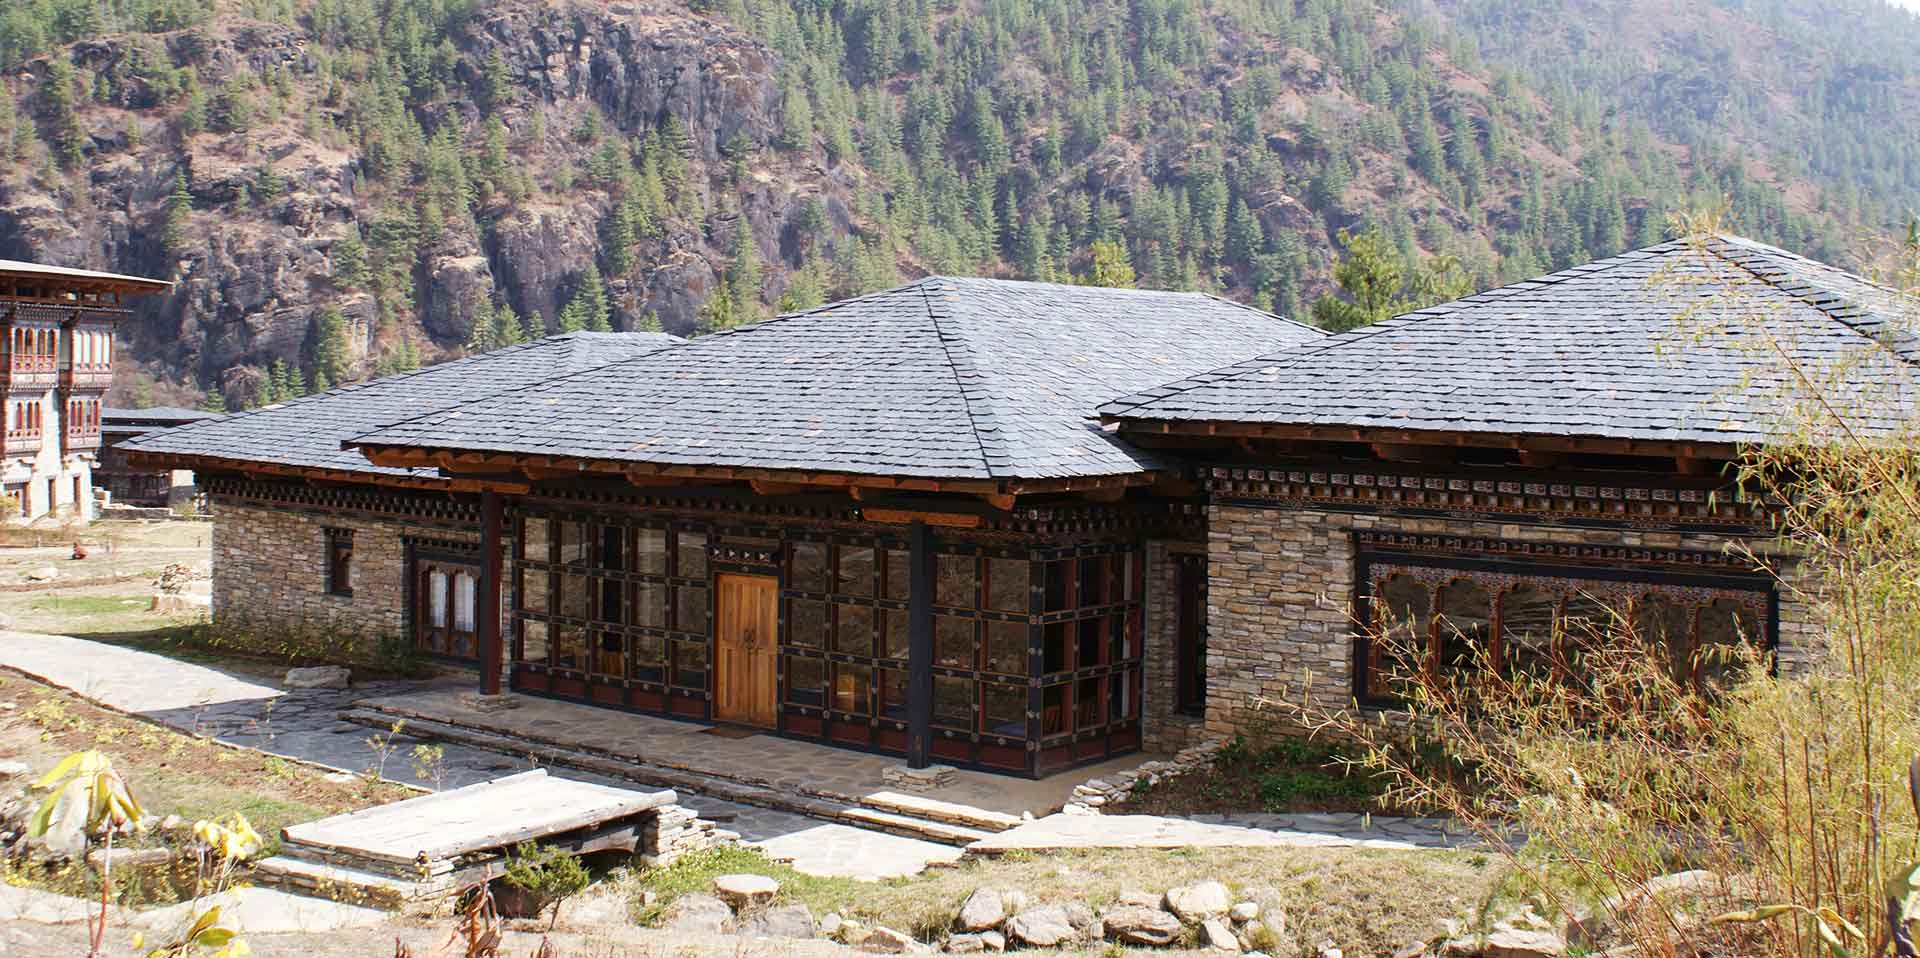 Asia Bhutan stone buildings high up in the Himalaya mountains - luxury vacation destinations